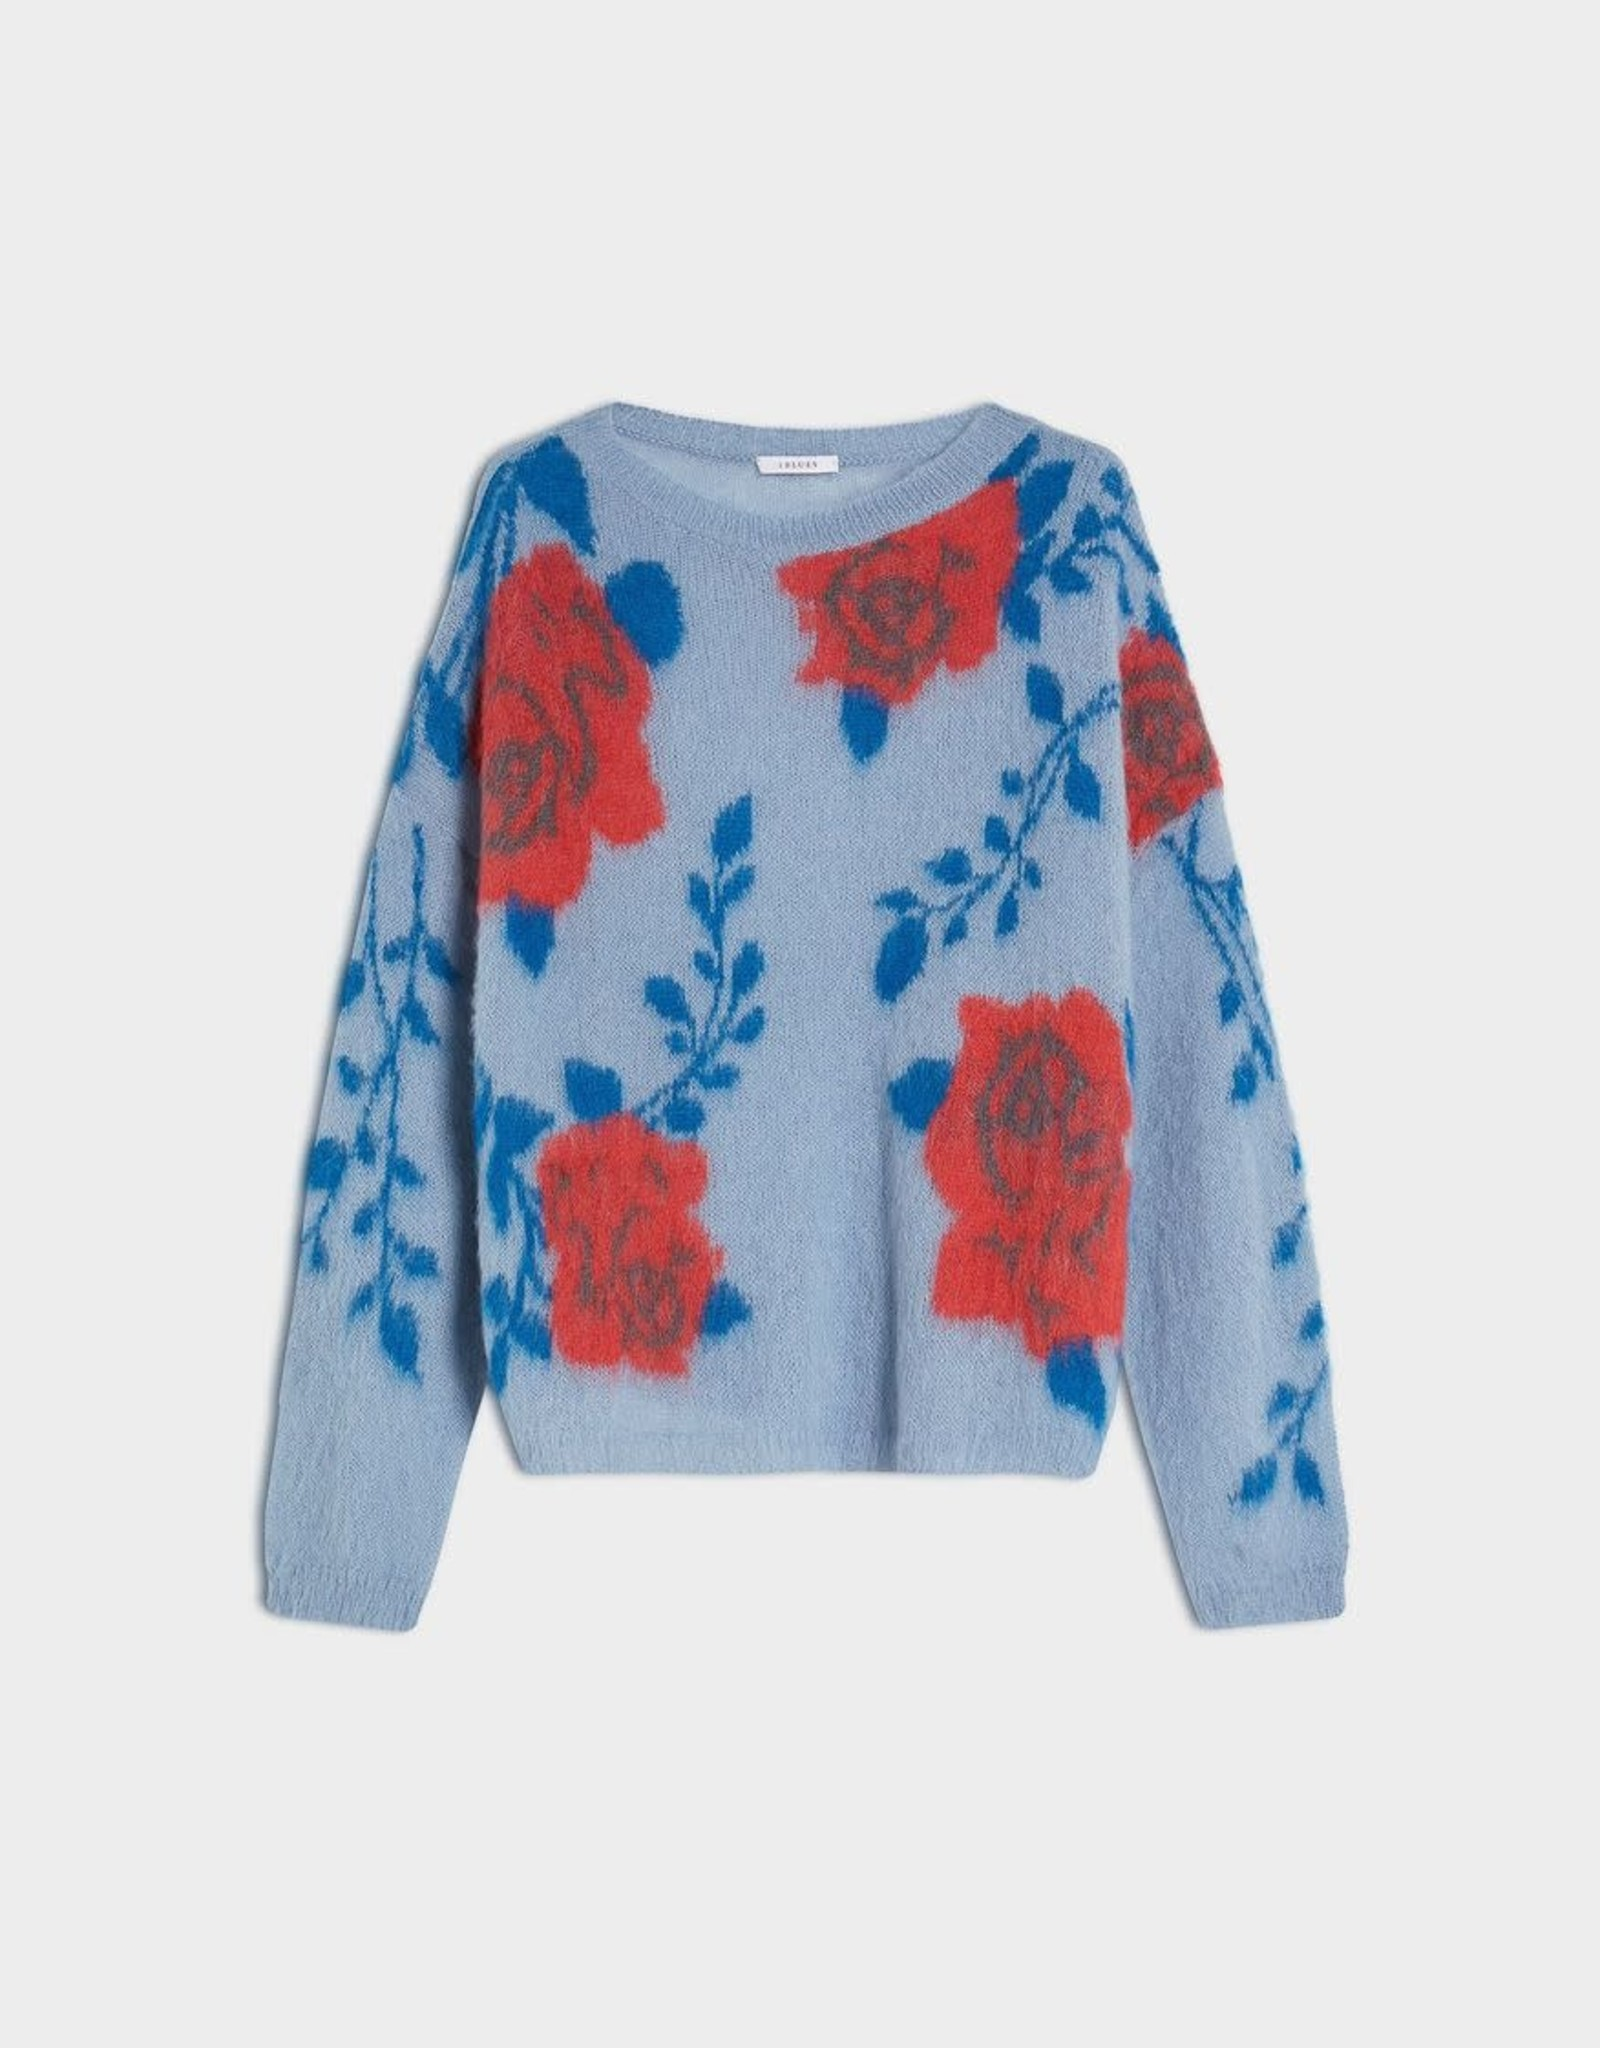 ONTARIO BLUE OVERSIZED WIDE NECK JUMPER BY IBLUES